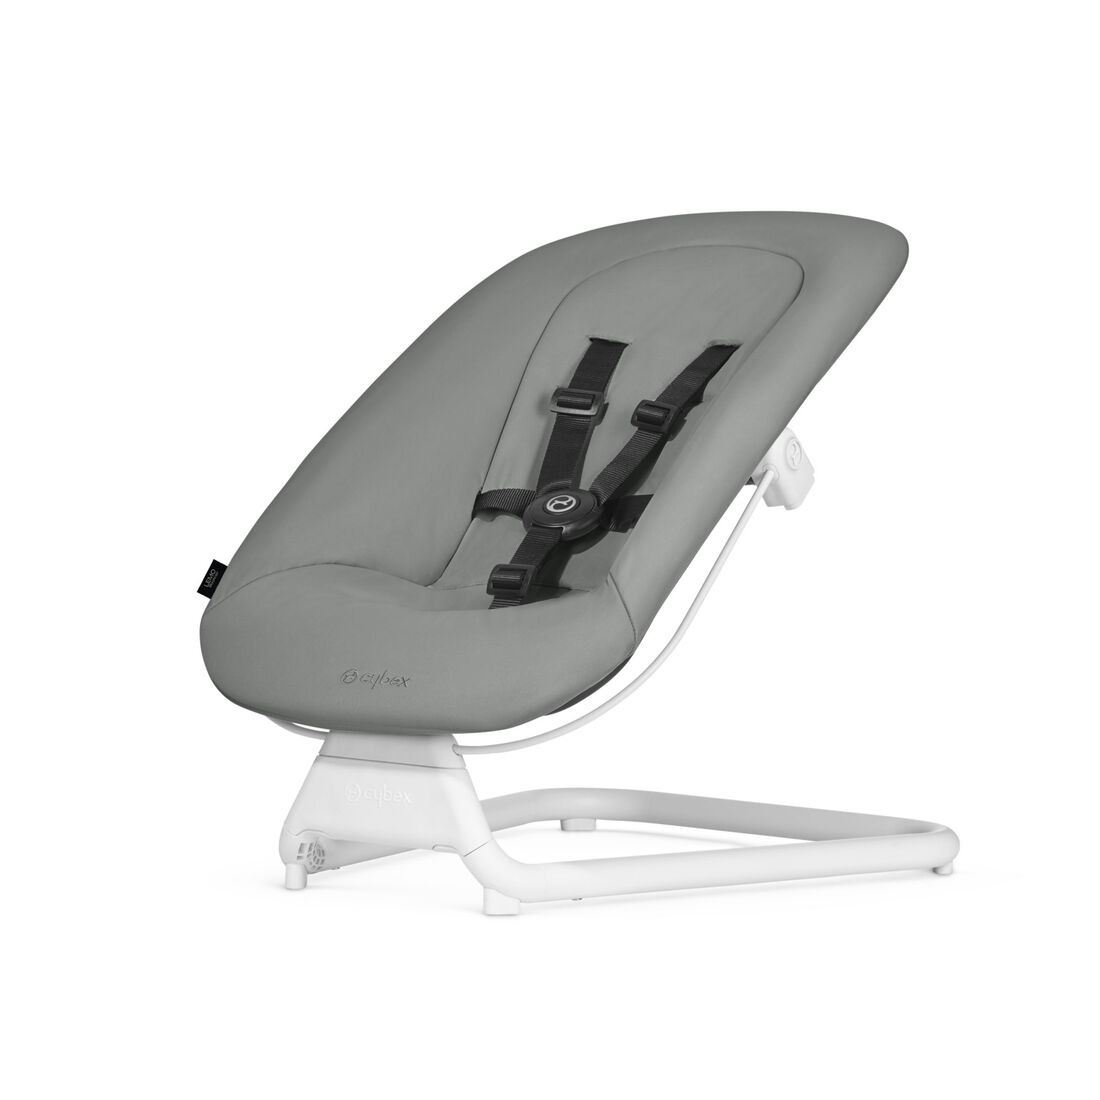 CYBEX Lemo Bouncer - Storm Grey in Storm Grey large image number 1